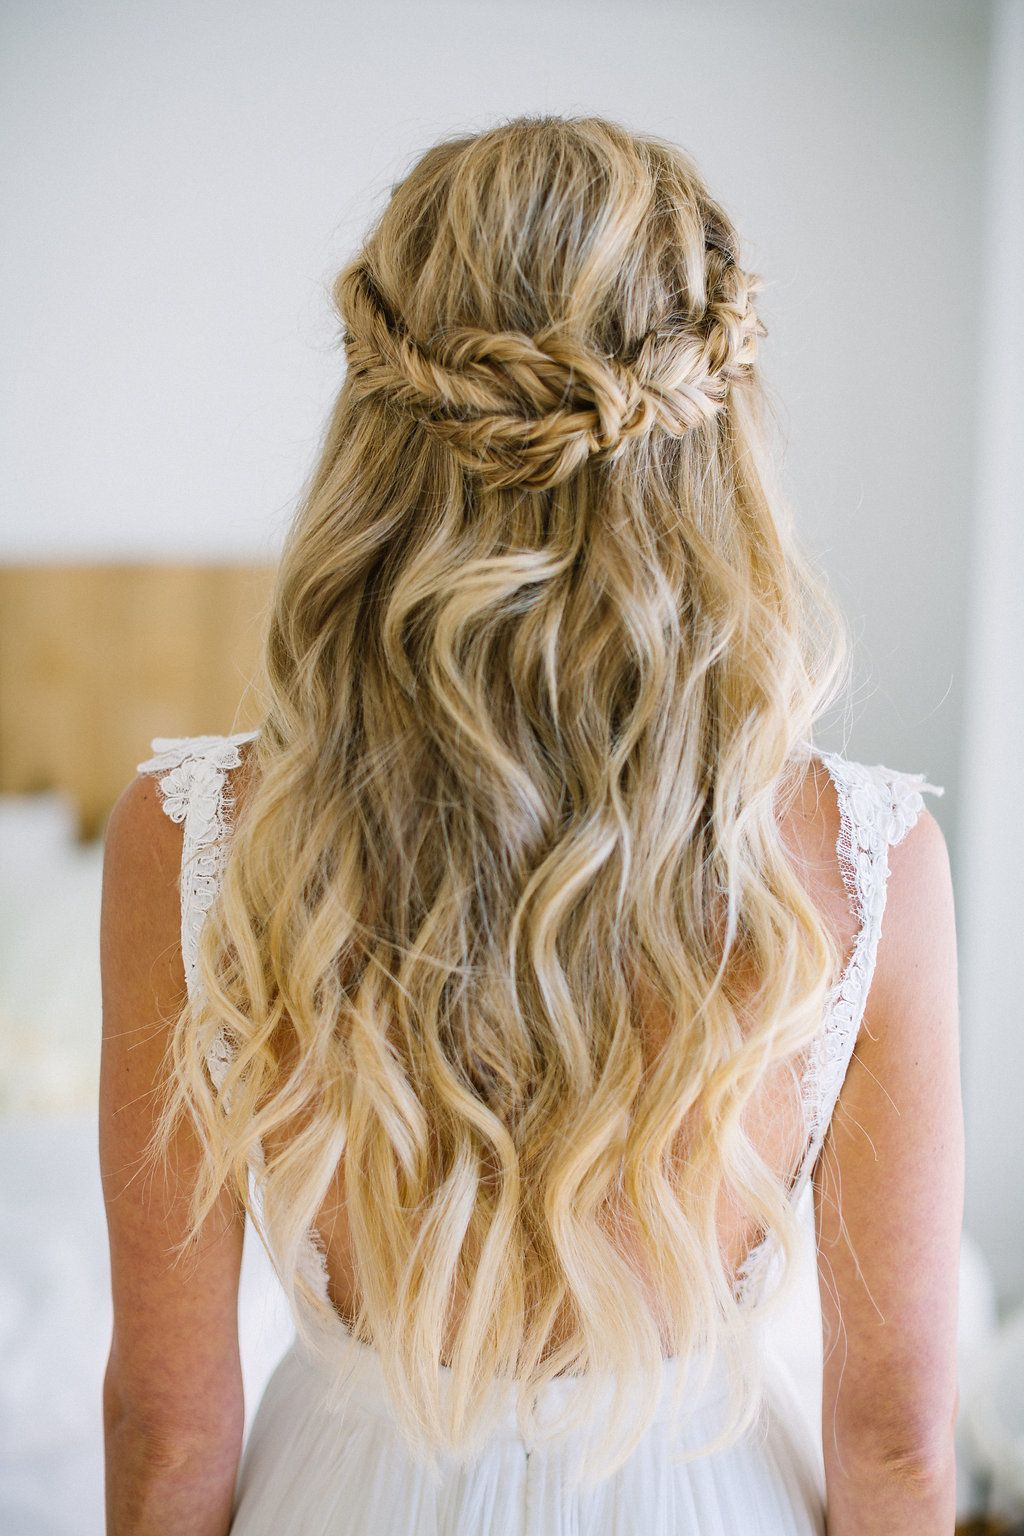 Wedding beach hair   DropDeadGorgeous Hairstyles to Inspire Your Big Day uDo